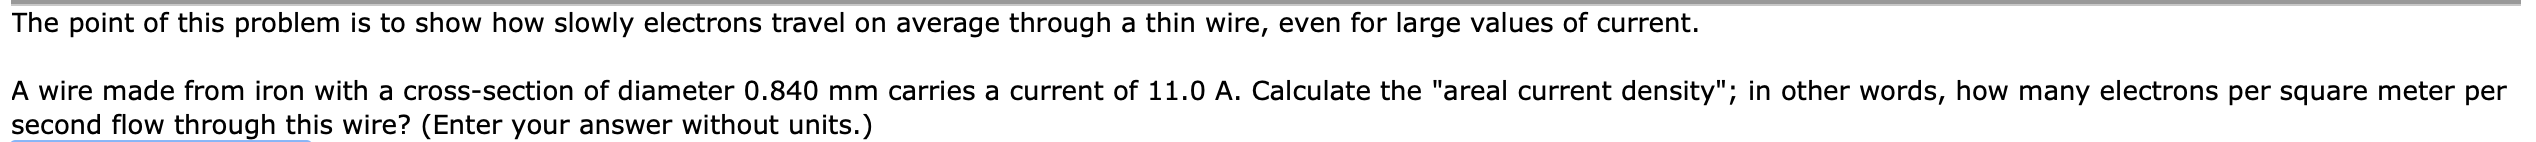 """The point of this problem is to show how slowly electrons travel on average through a thin wire, even for large values of current. A wire made from iron with a cross-section of diameter 0.840 mm carries a current of 11.0 A. Calculate the """"areal current density""""; in other words, how many electrons per square meter per second flow through this wire? (Enter your answer without units.)"""